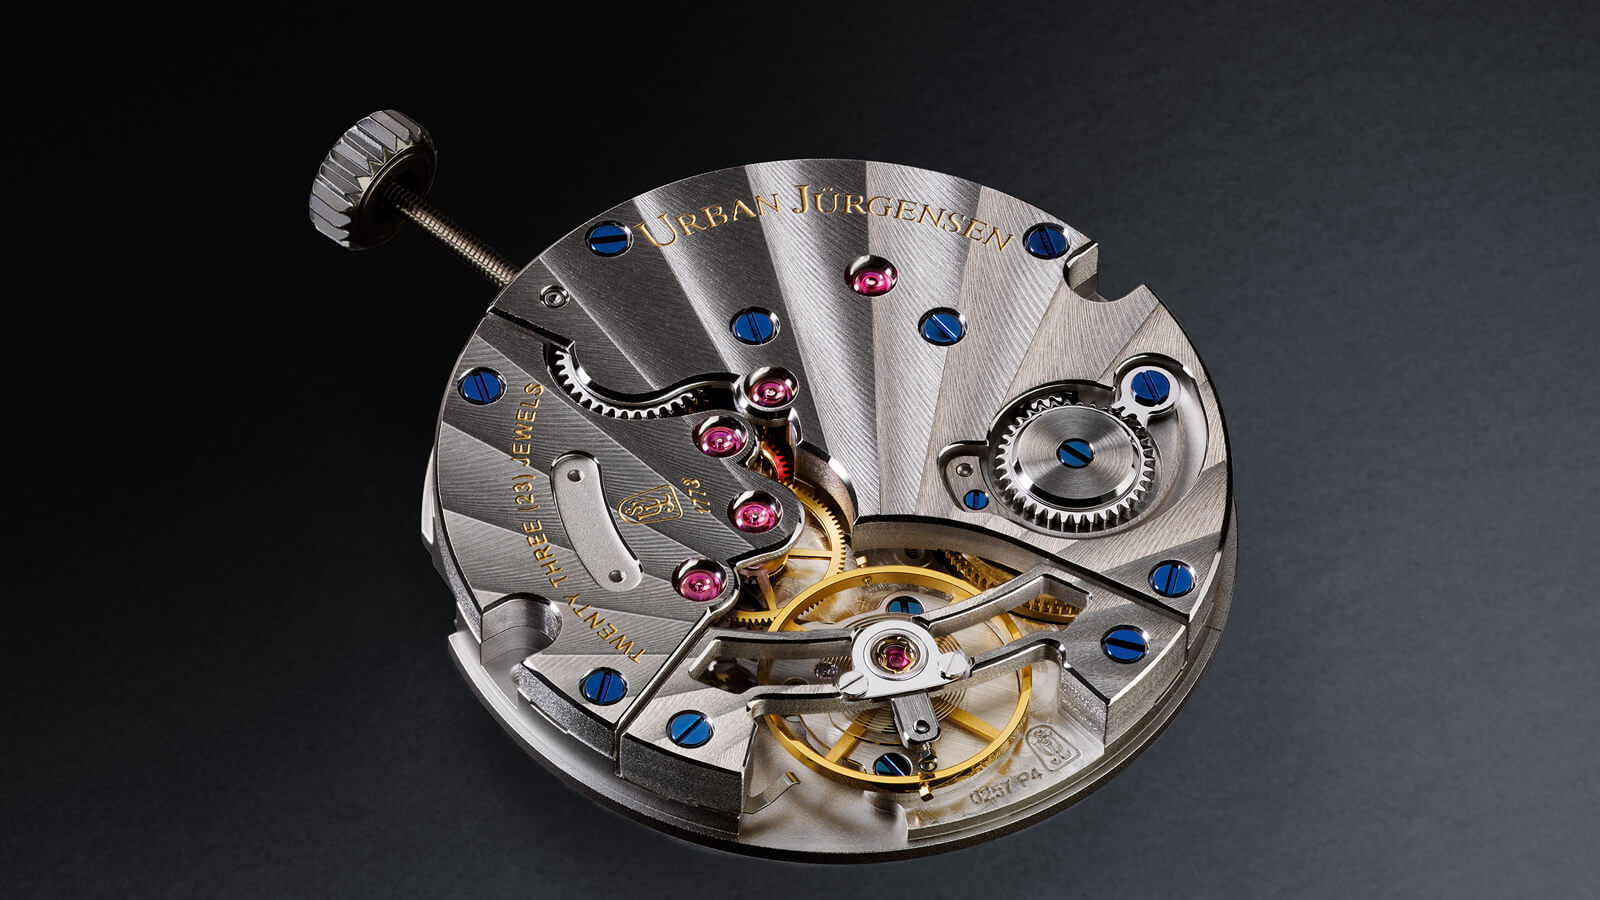 Urban Jürgensen Jules Collection Reference 2140 WG featuring hand-wound P4 movement and black guilloché dial